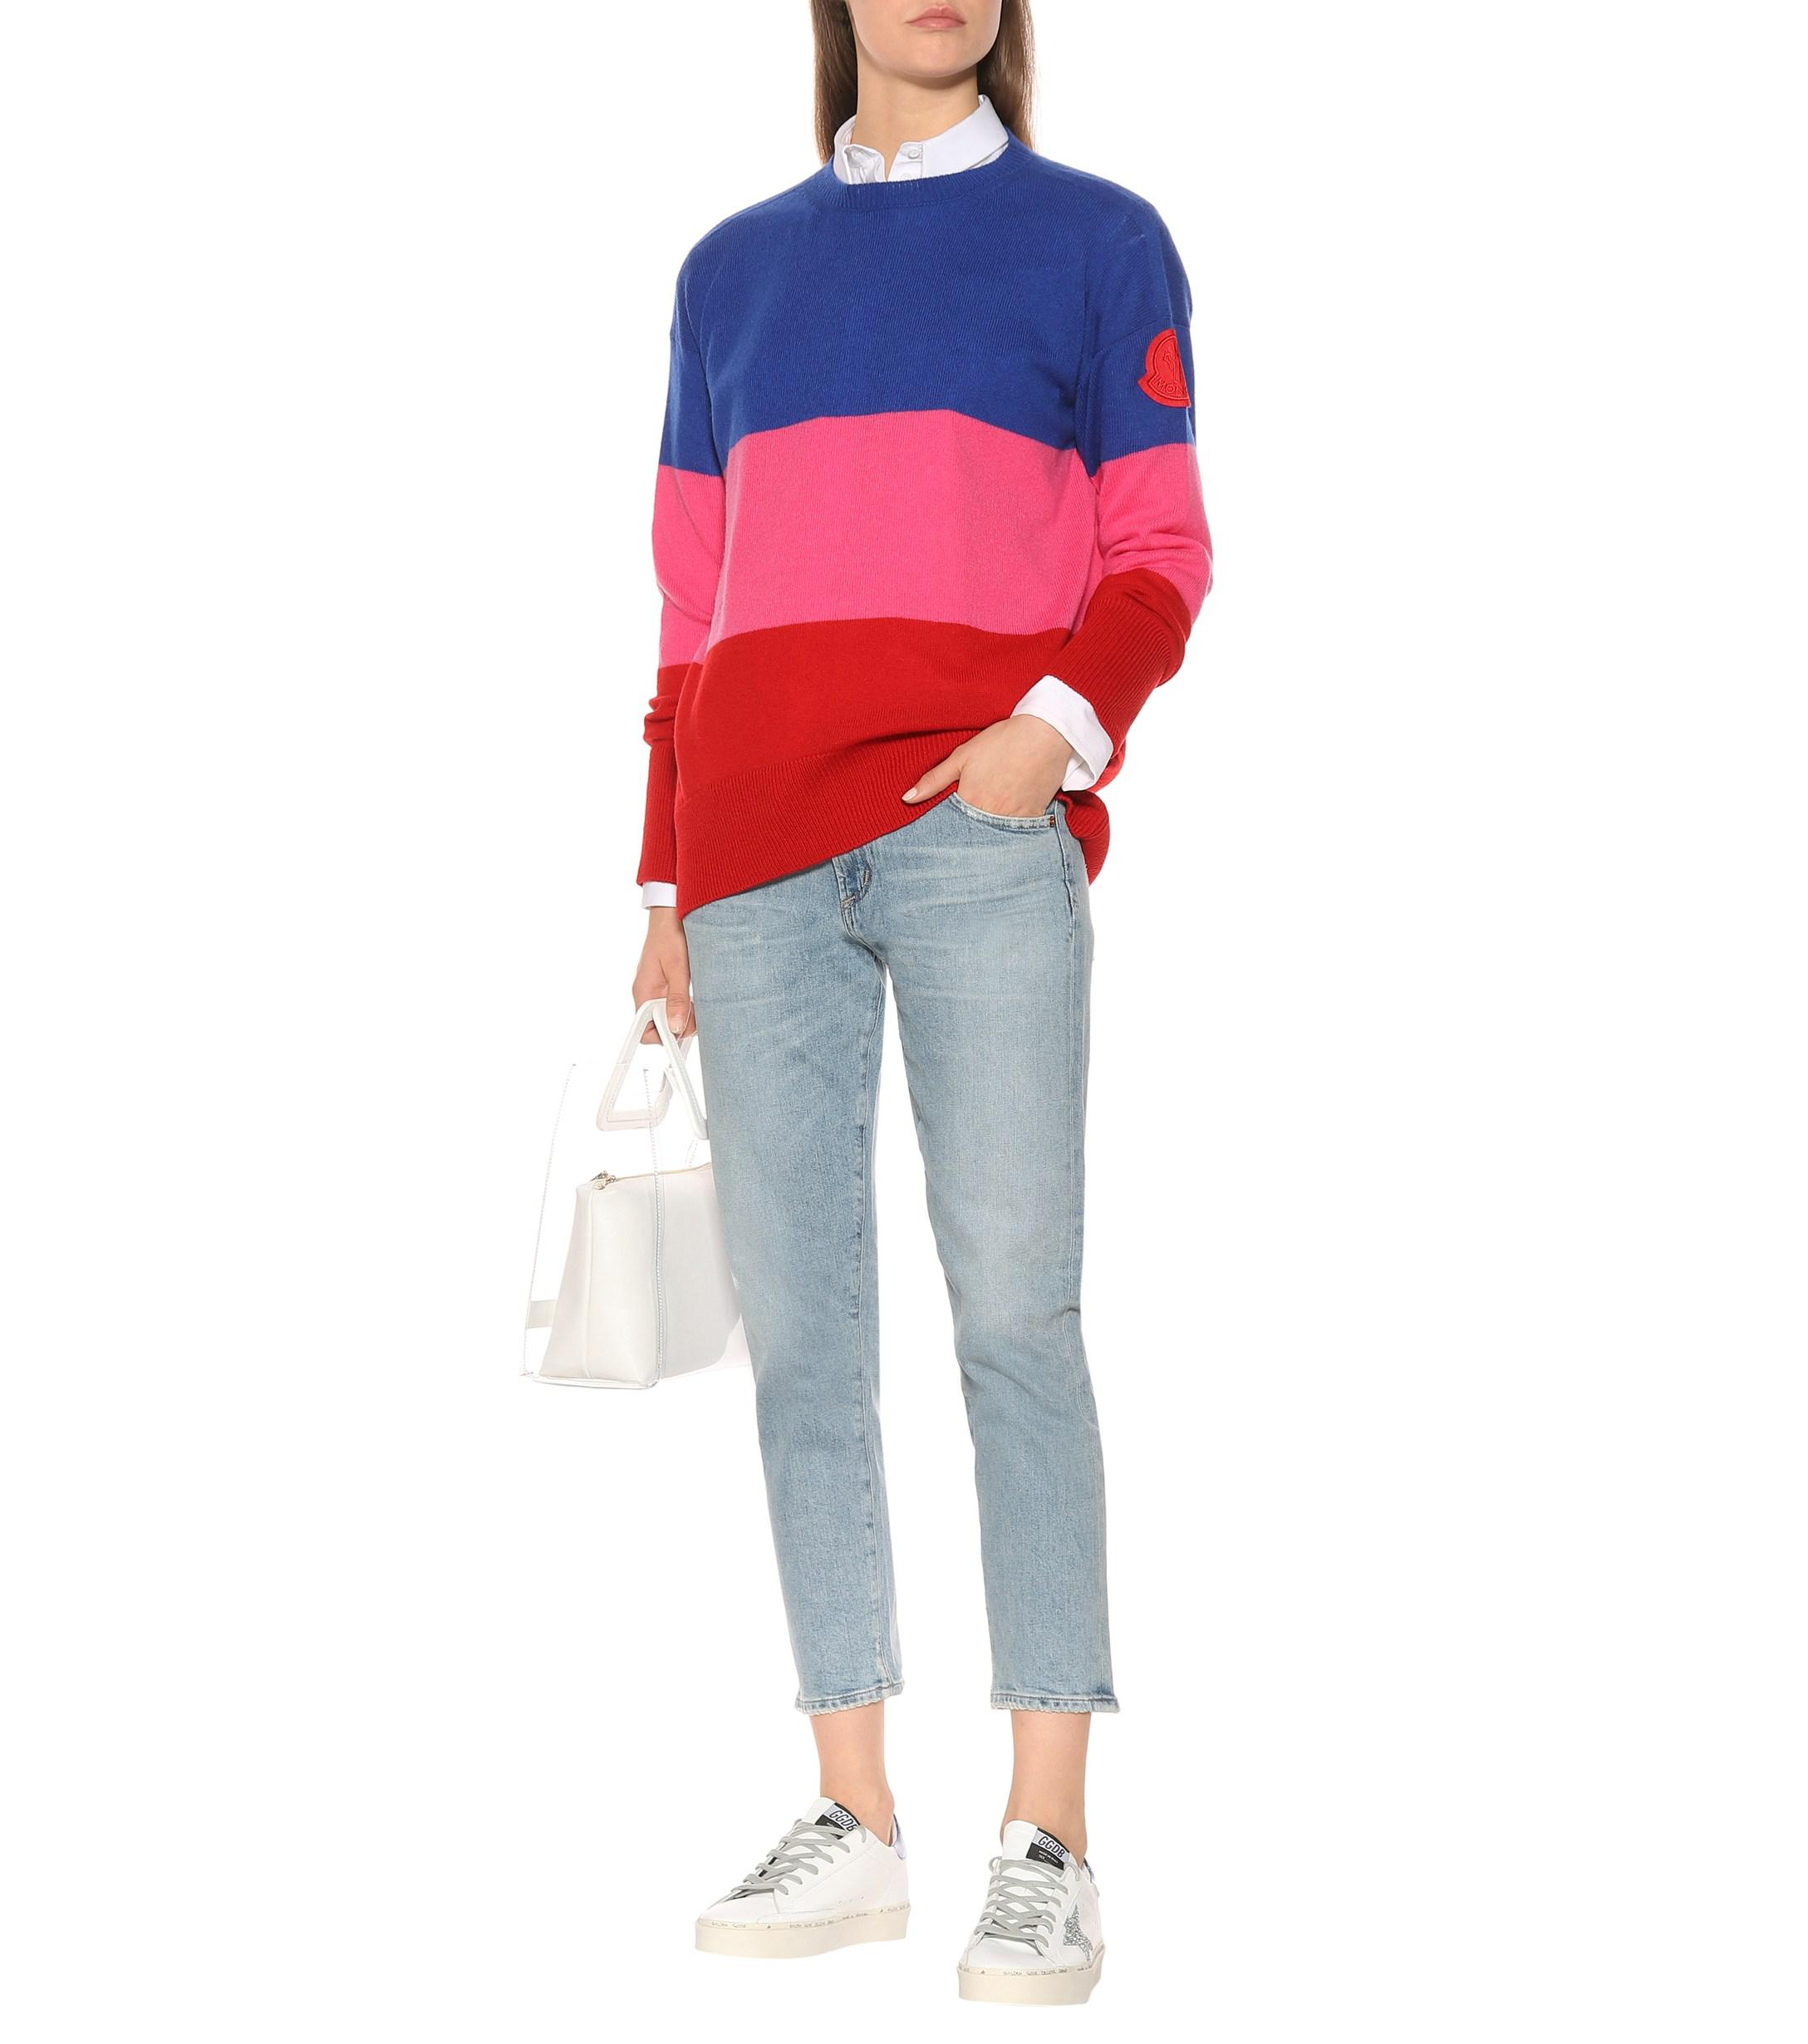 d7b50edf80f40a Lyst - Moncler Striped Cashmere Sweater in Red - Save 26%